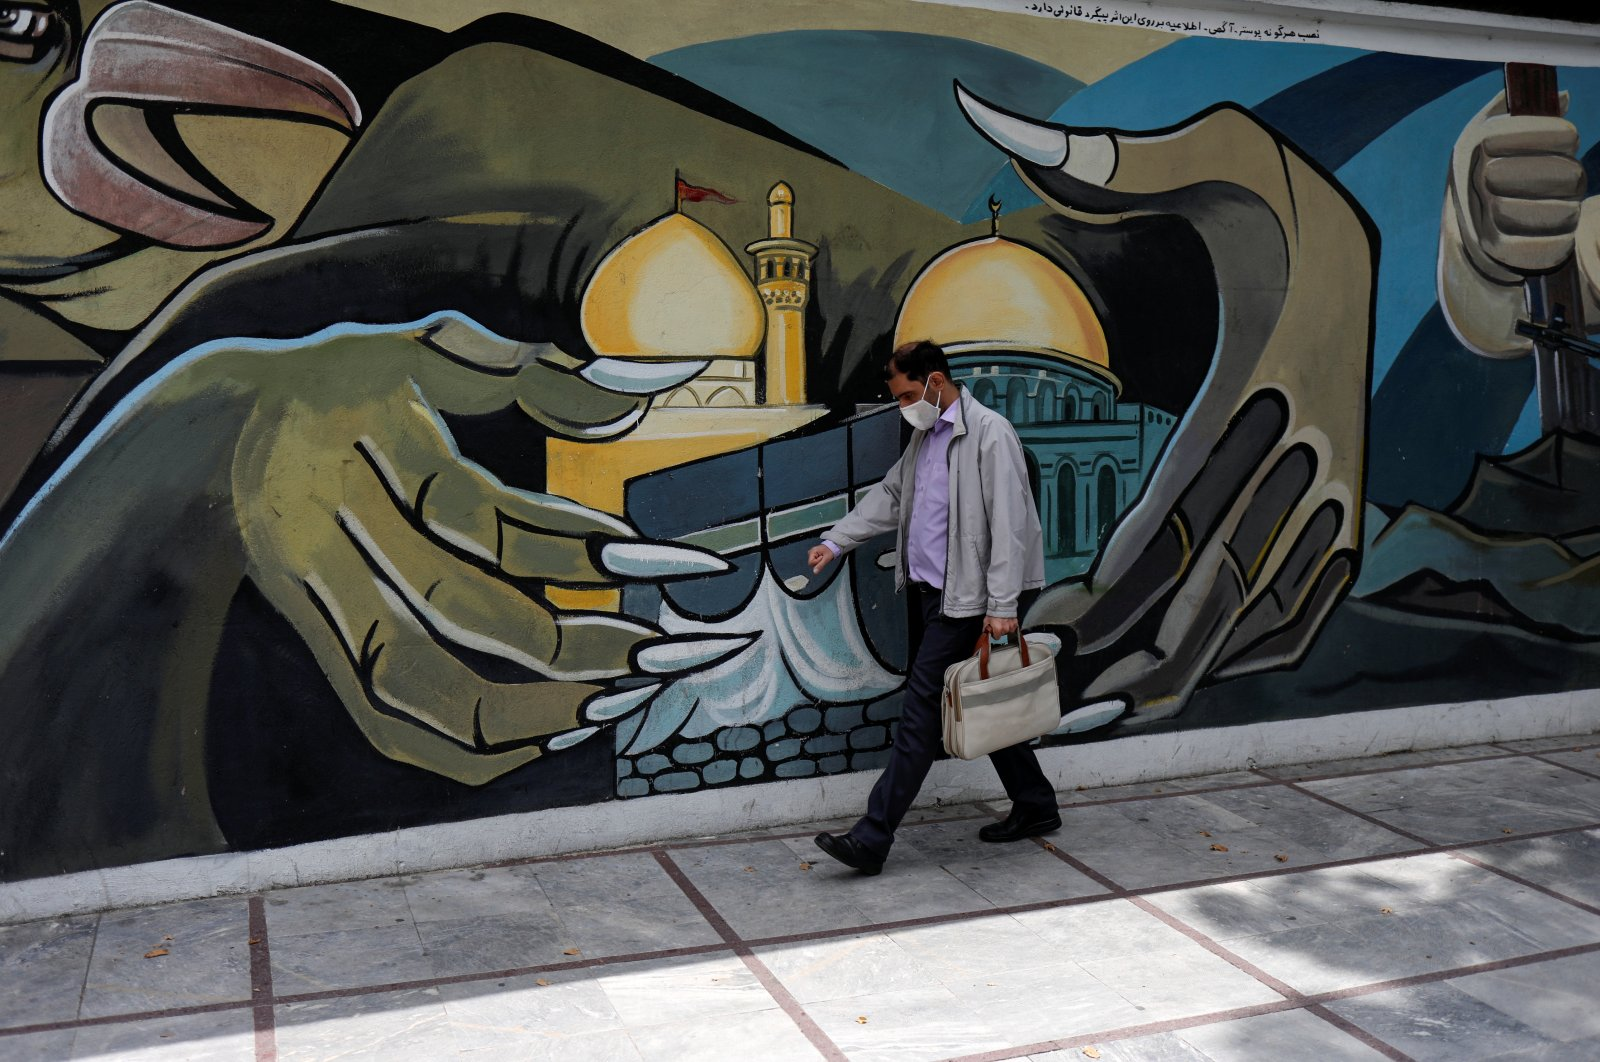 A man wearing a protective face mask walks past a Palestine mural on the wall following the outbreak of the coronavirus, Tehran, Iran, April 30, 2020. (WANA / Ali Khara via REUTERS)